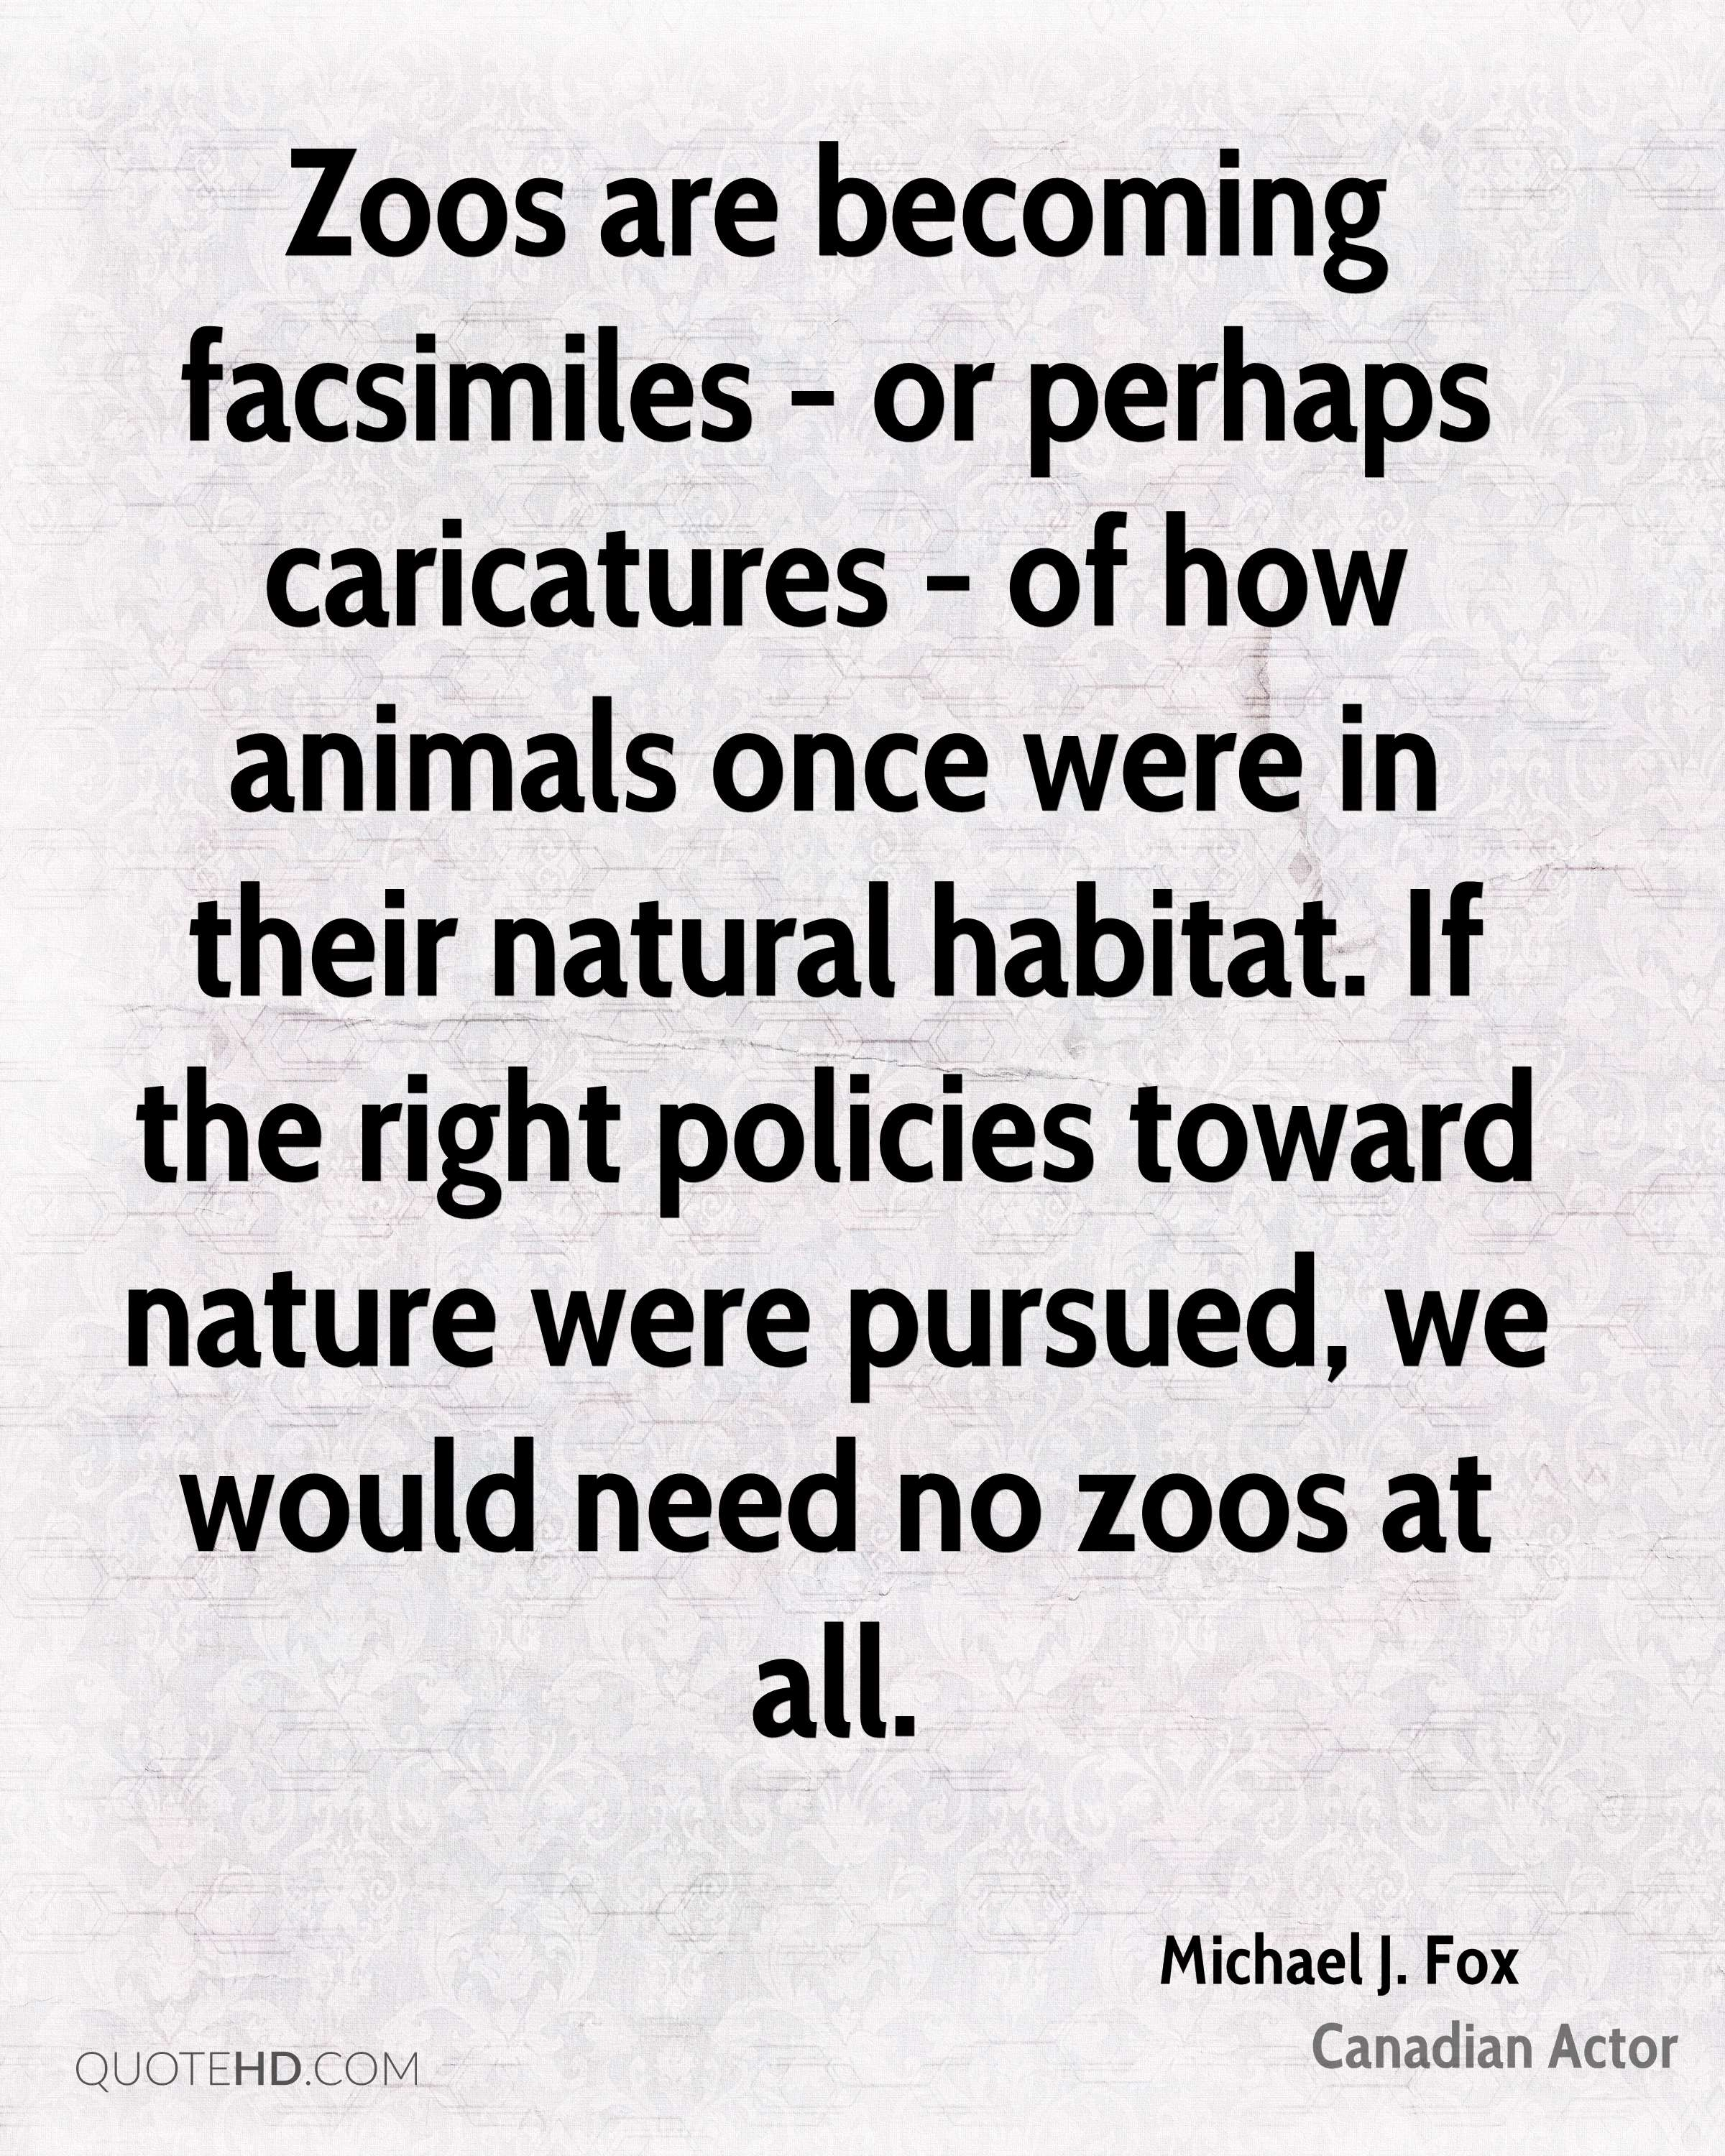 Zoos are becoming facsimiles - or perhaps caricatures - of how animals once were in their natural habitat. If the right policies toward nature were pursued, we would need no zoos at all.